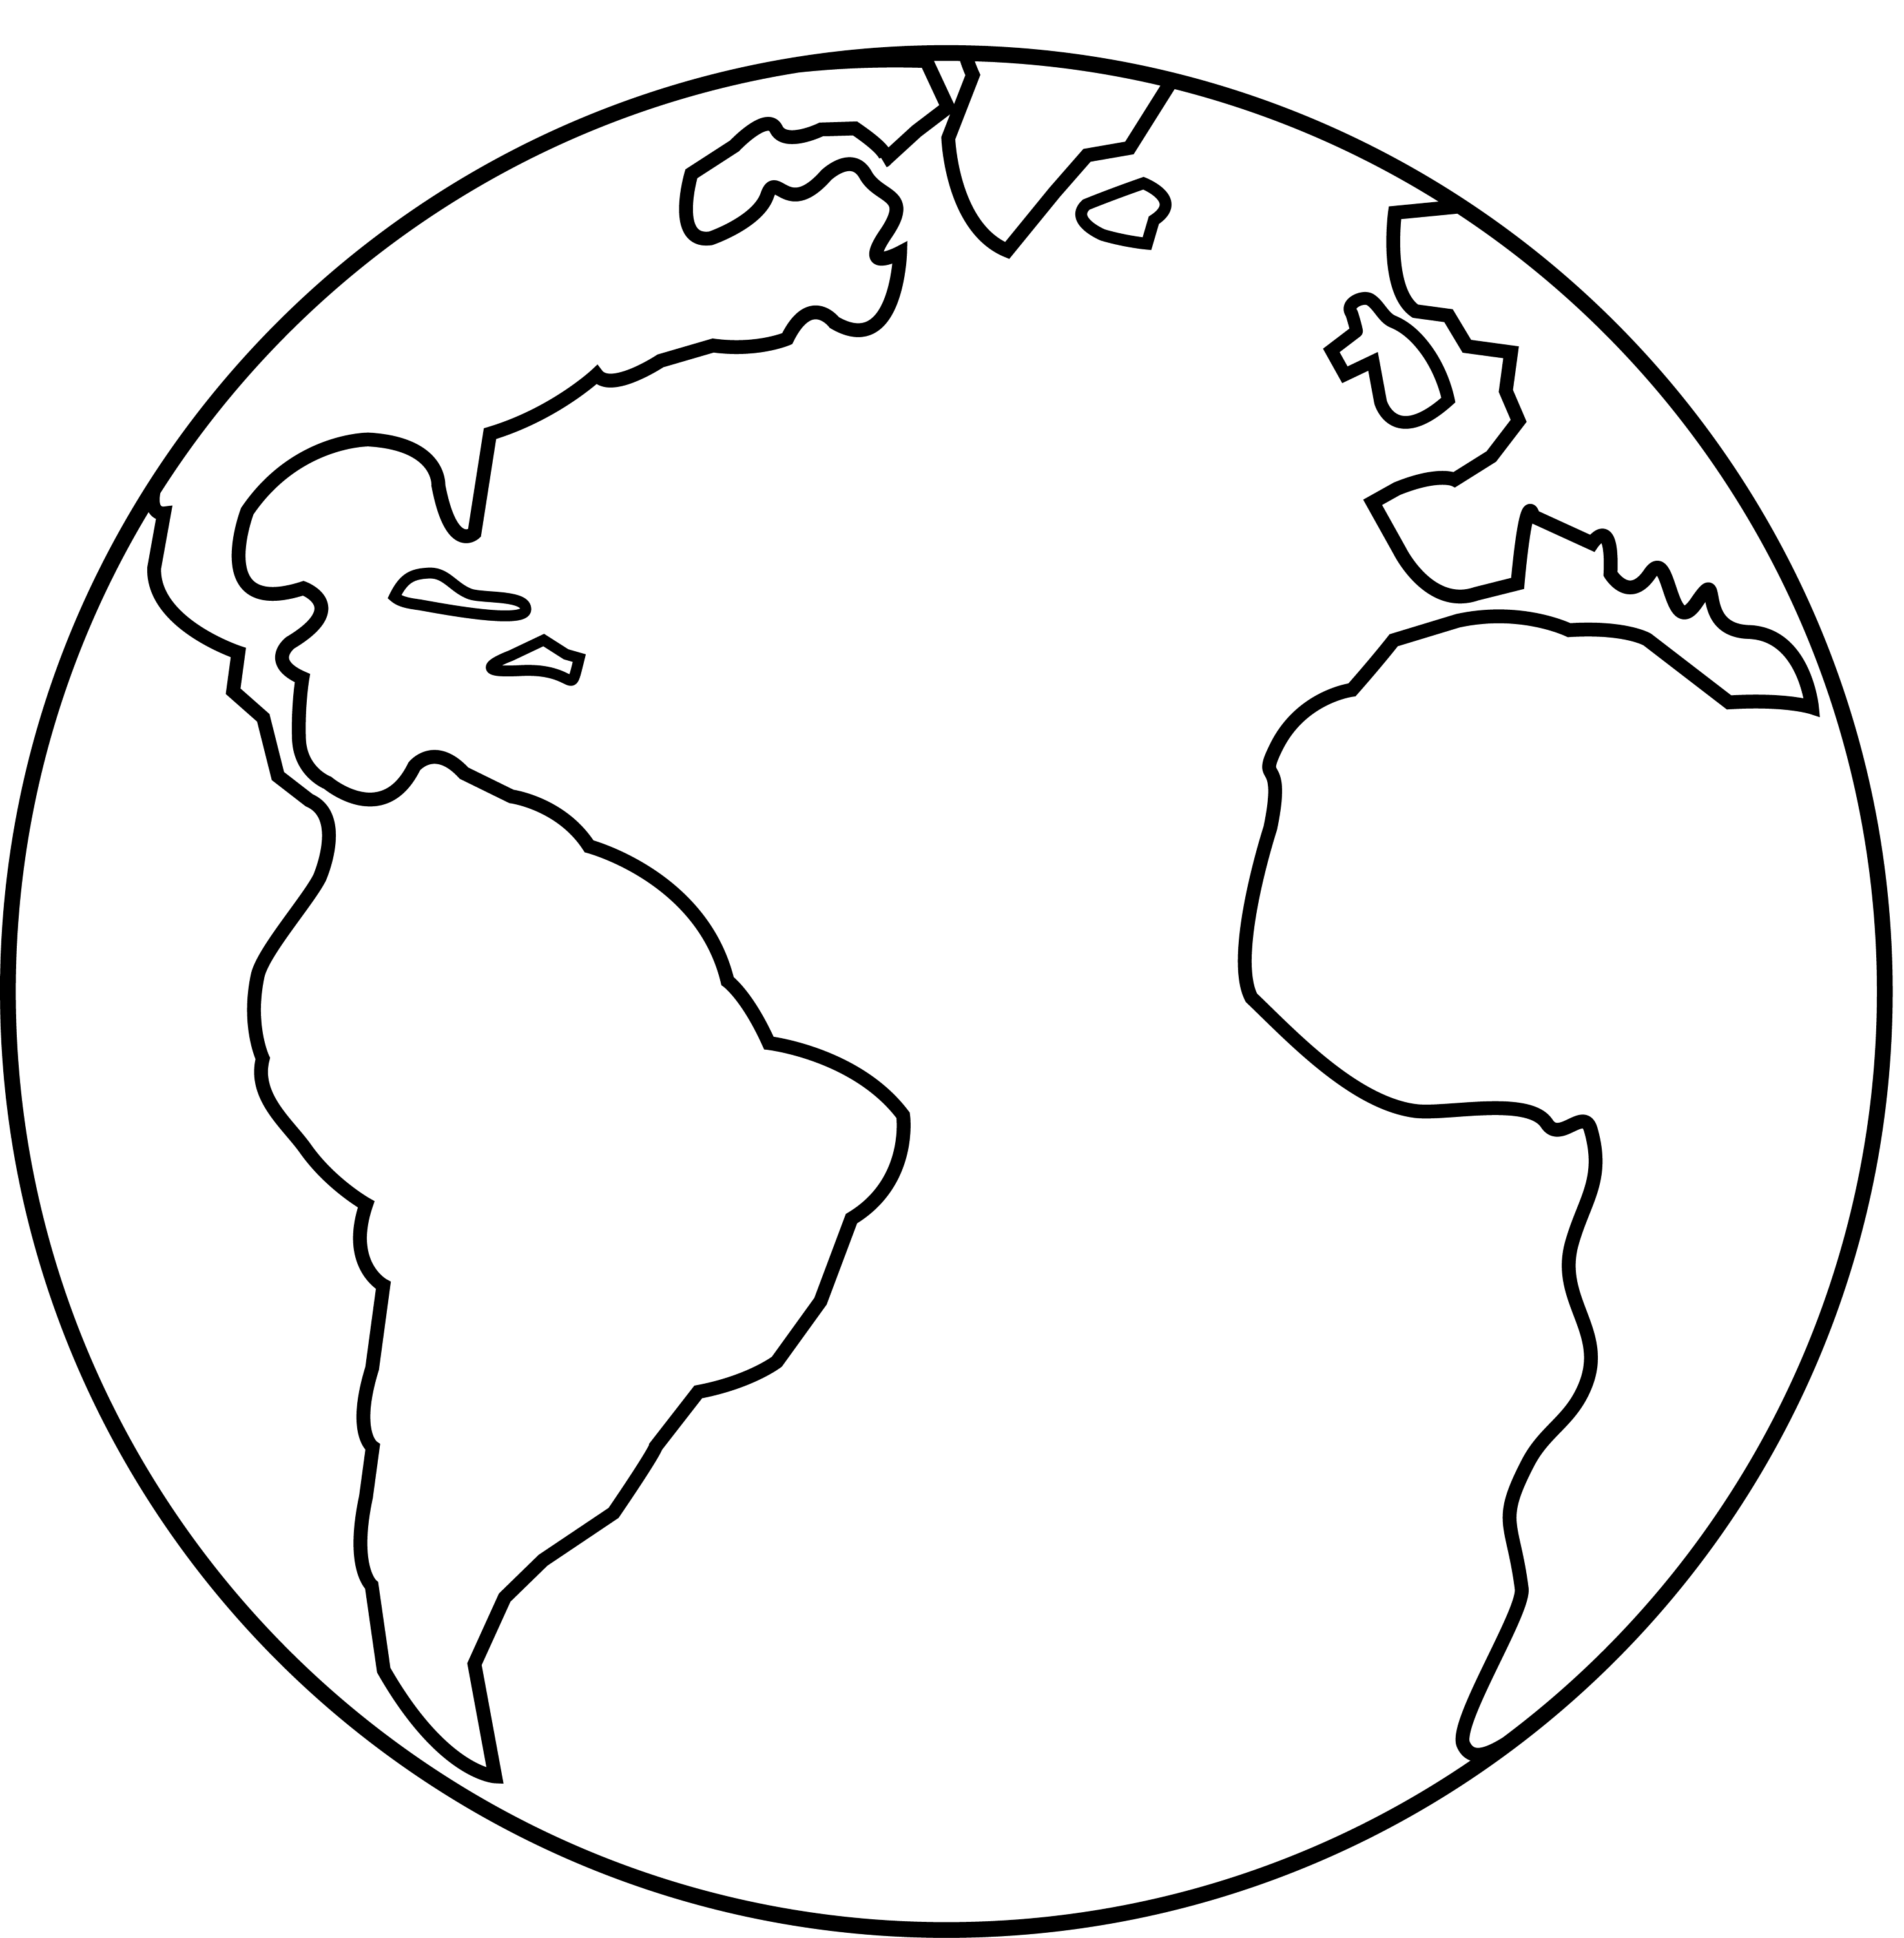 coloring pictures of earth free printable planet coloring pages for kids pictures coloring of earth